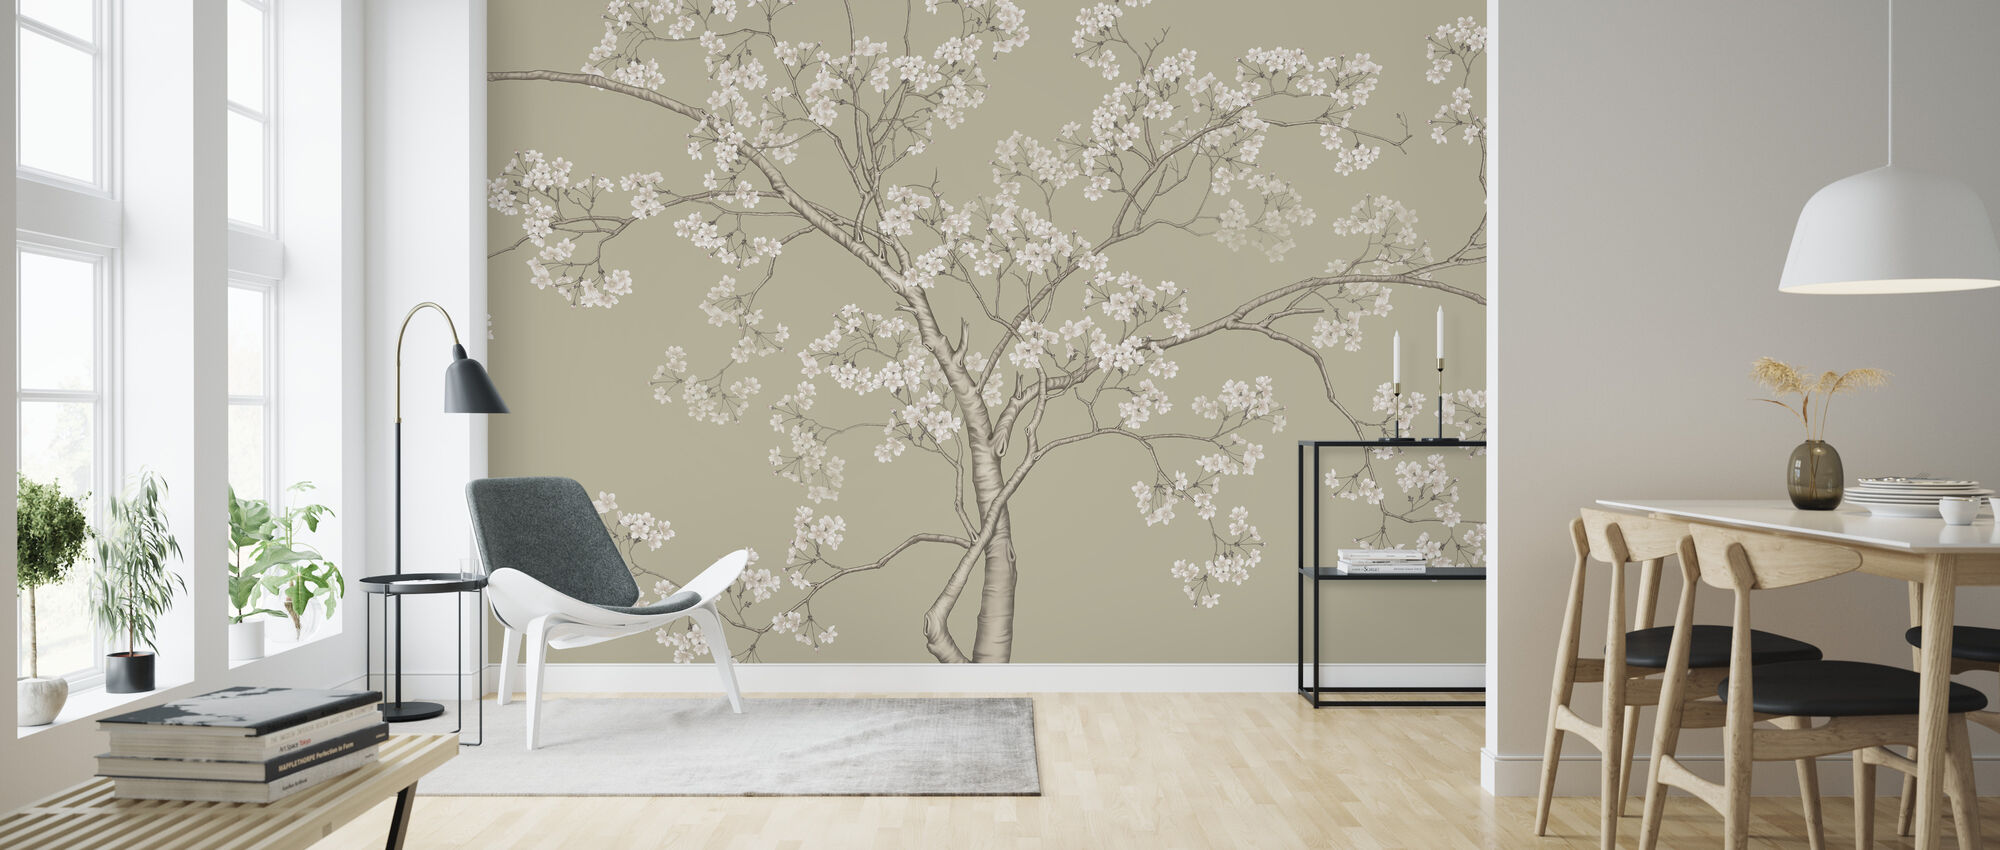 The Tree - Fawn - Wallpaper - Living Room